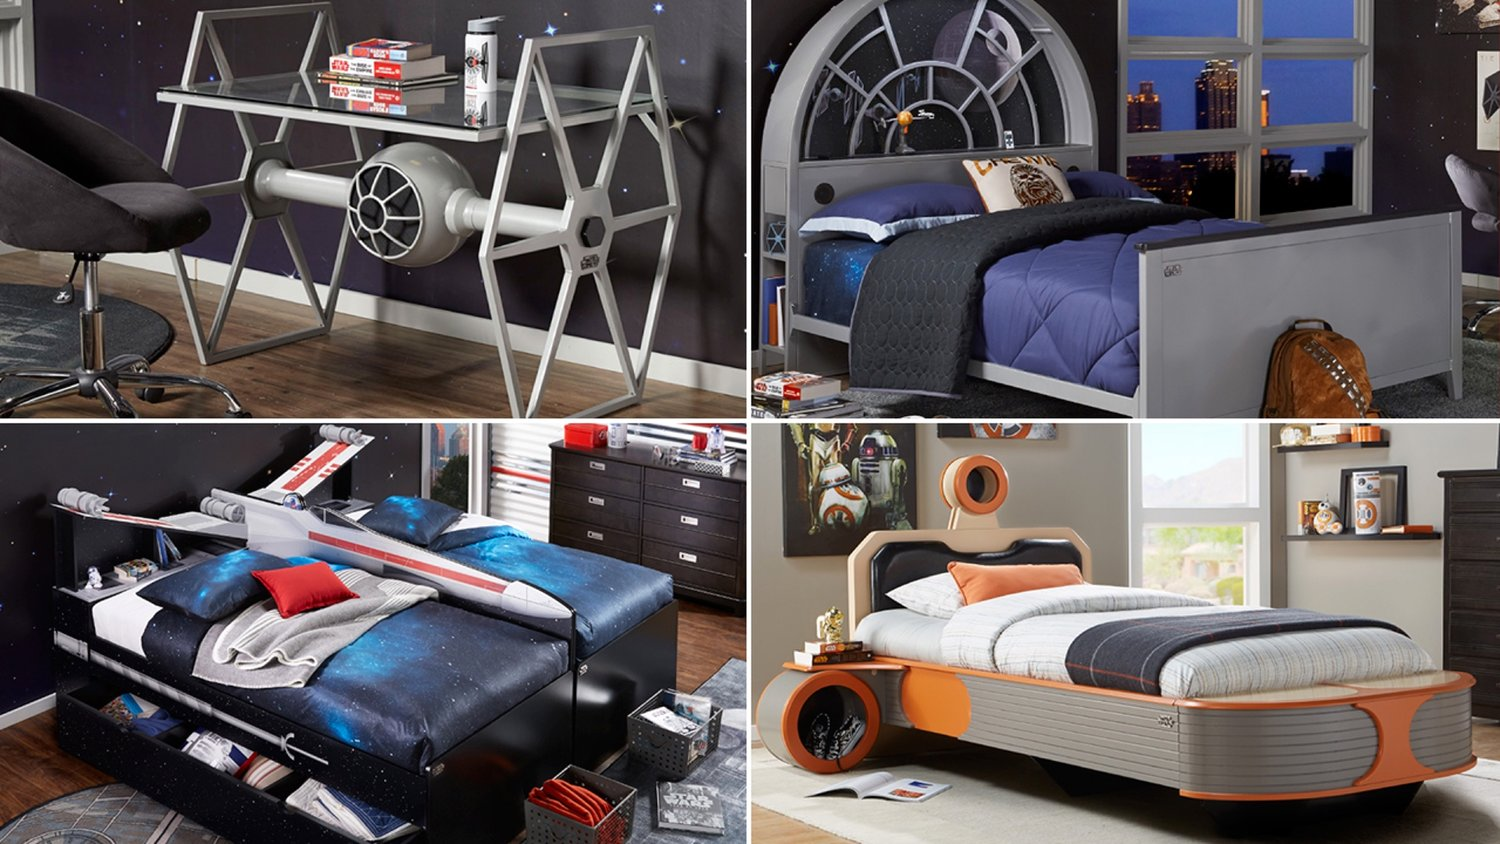 Check Out This Awesome Line Of Star Wars Inspired Furniture Kinotop 1 Livejournal